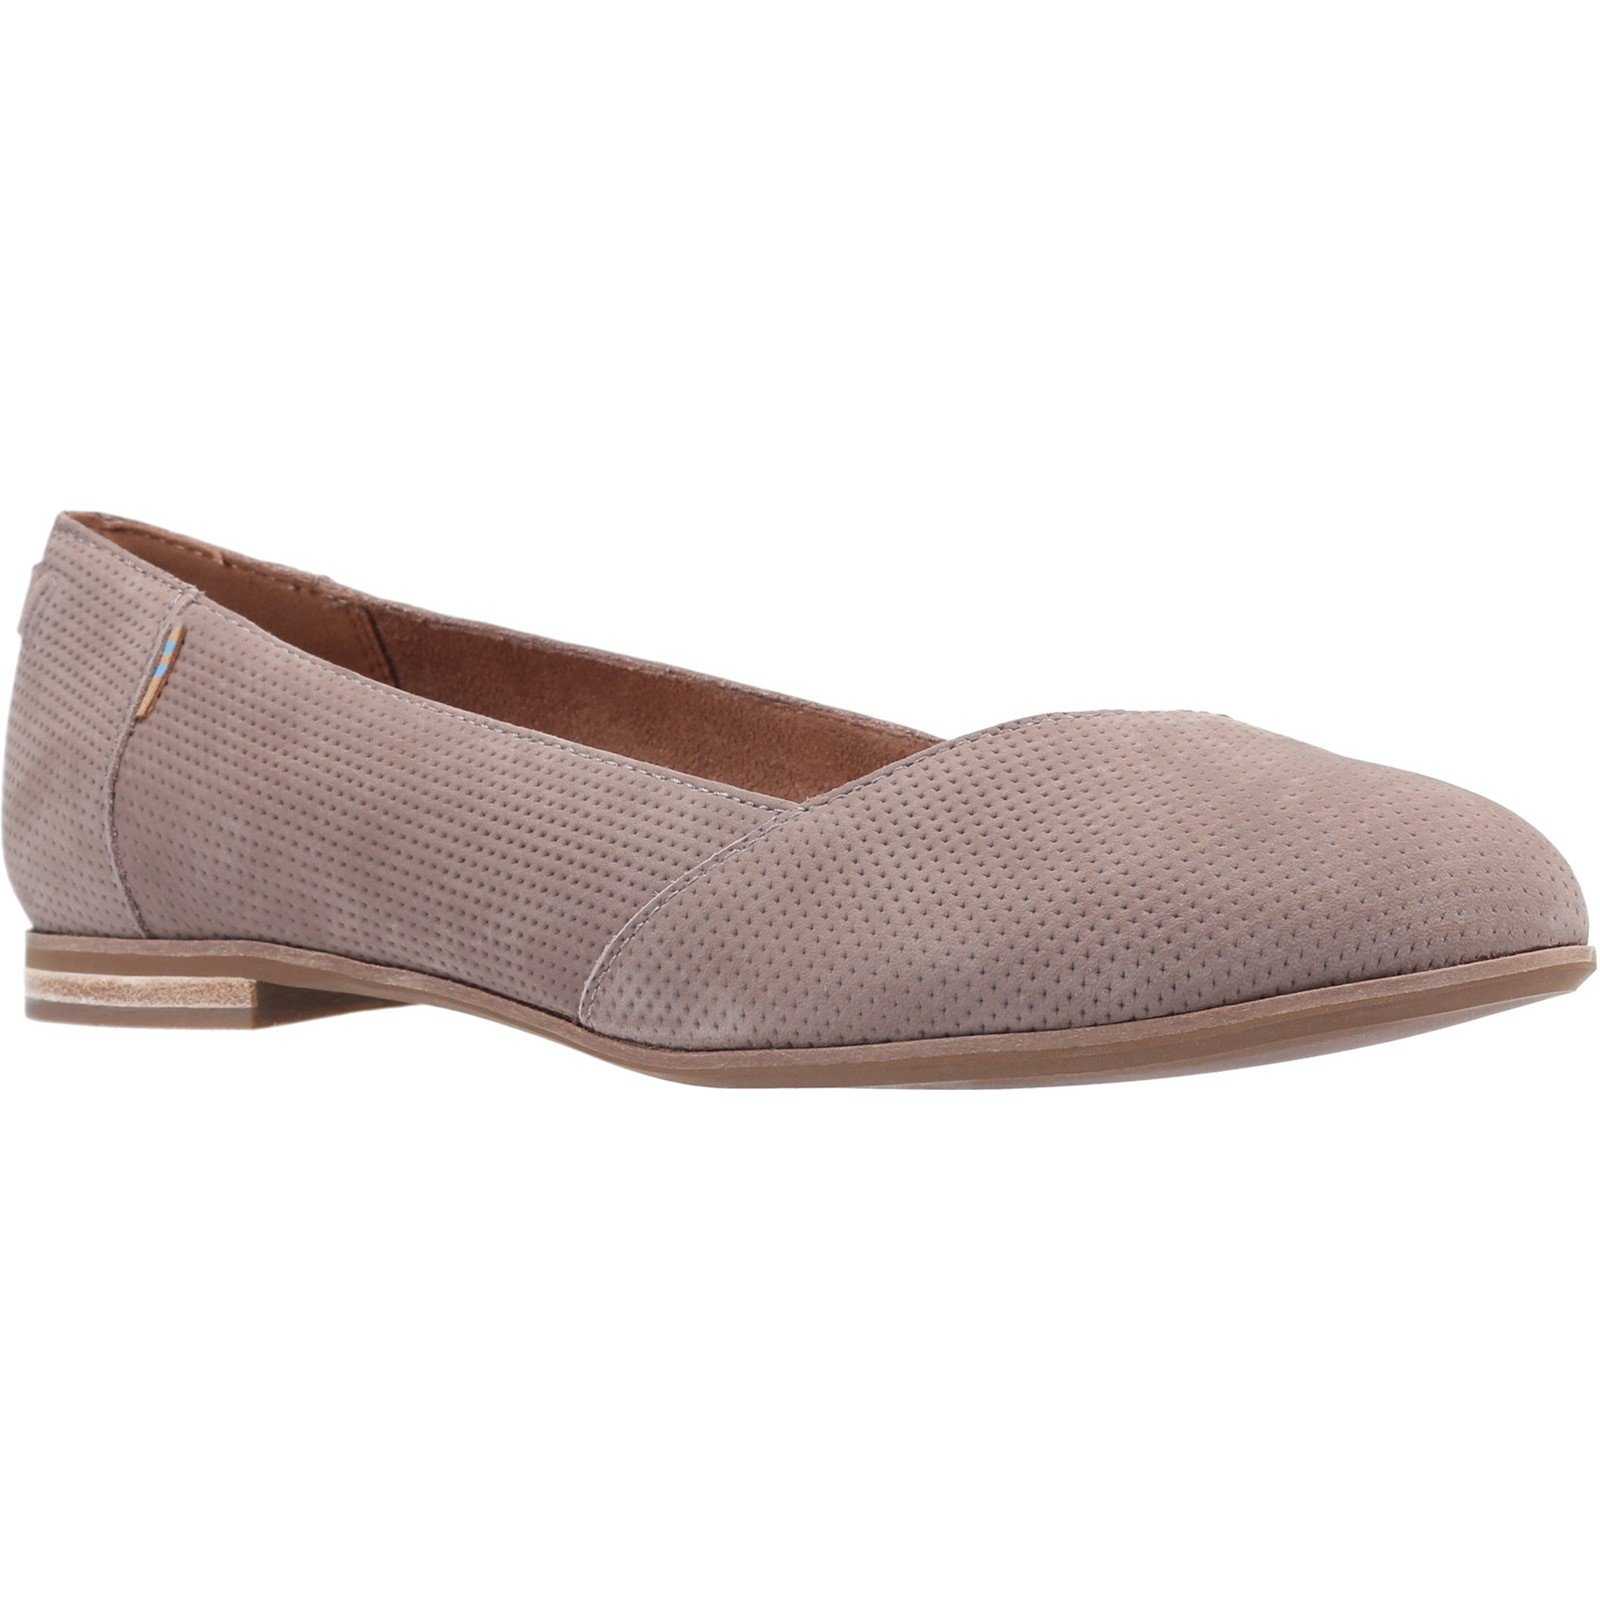 TOMS Women's Julie Flat Various Colours 31593 - Taupe Grey Suede/Perf 7